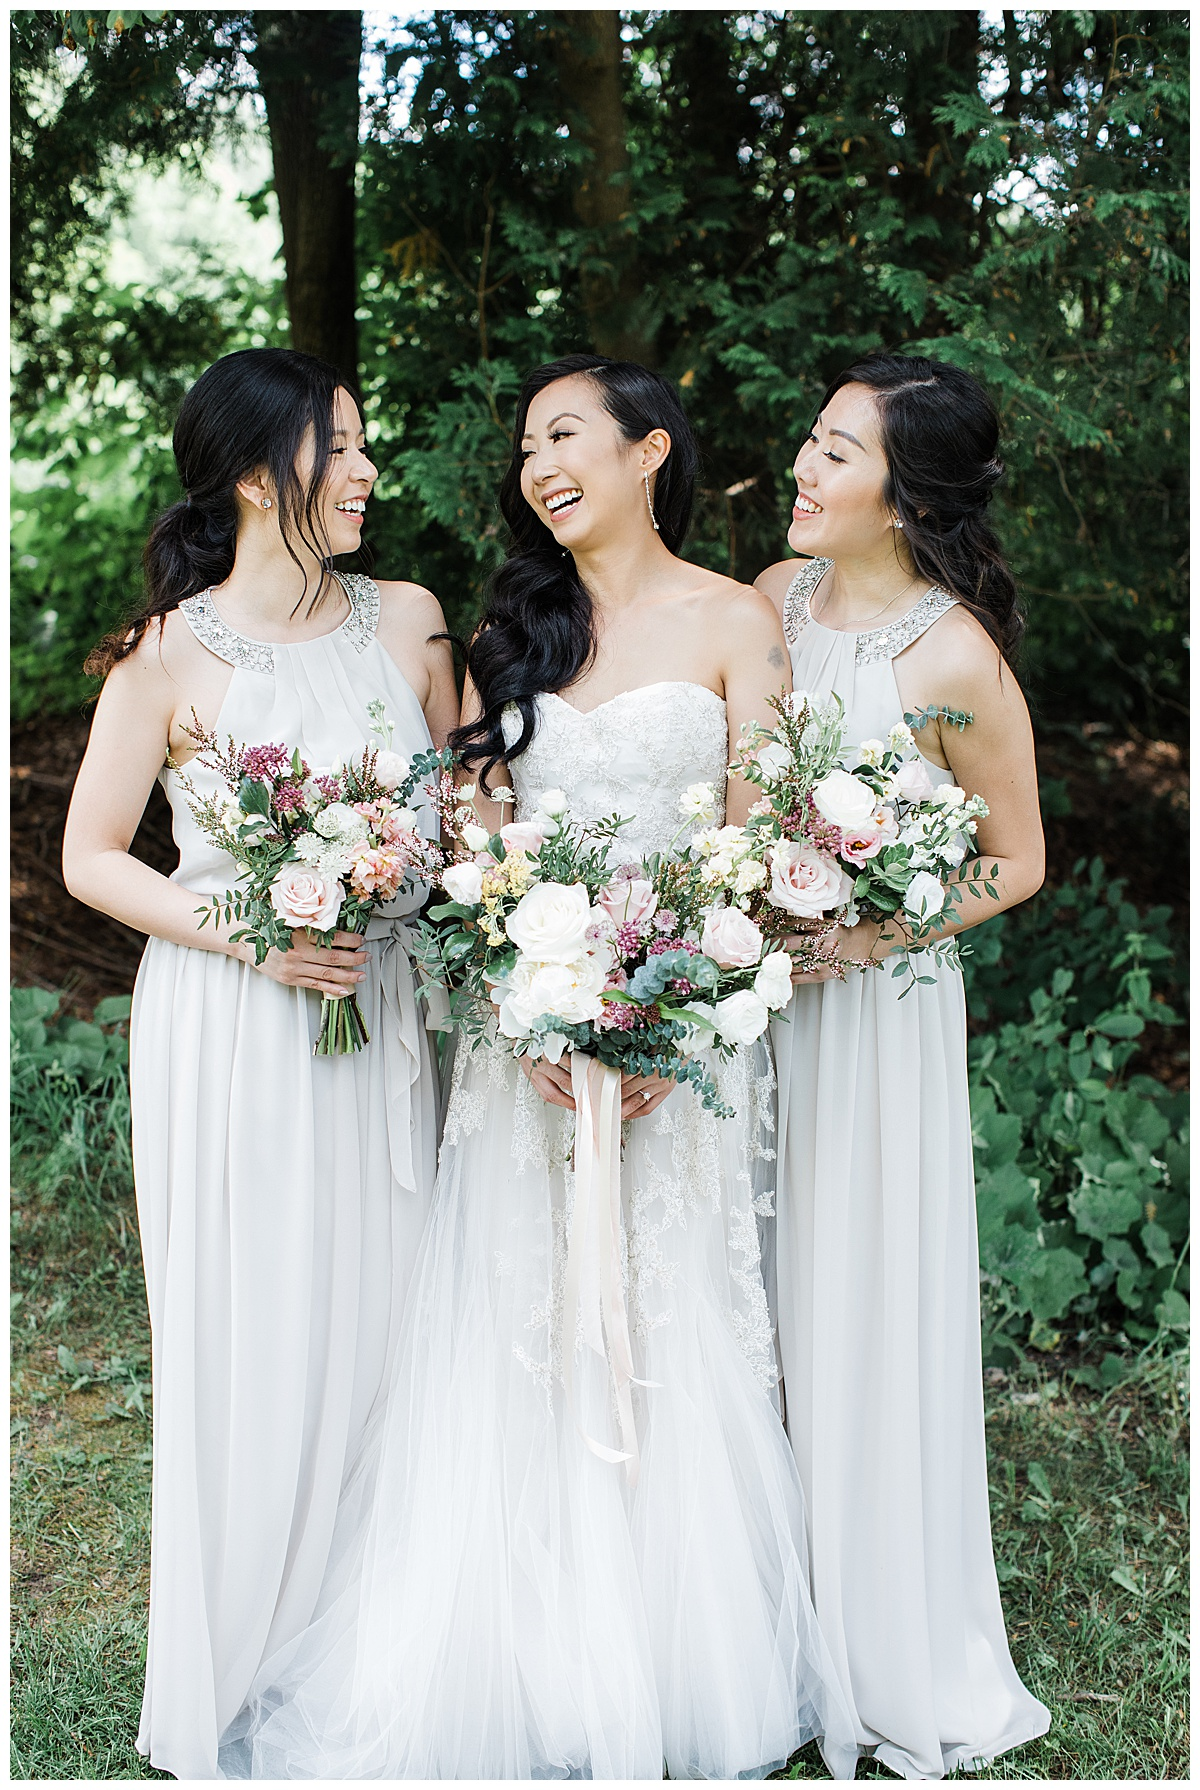 Bride smiling with her bridesmaids| neutral bridesmaids dresses| winery wedding| 3photography